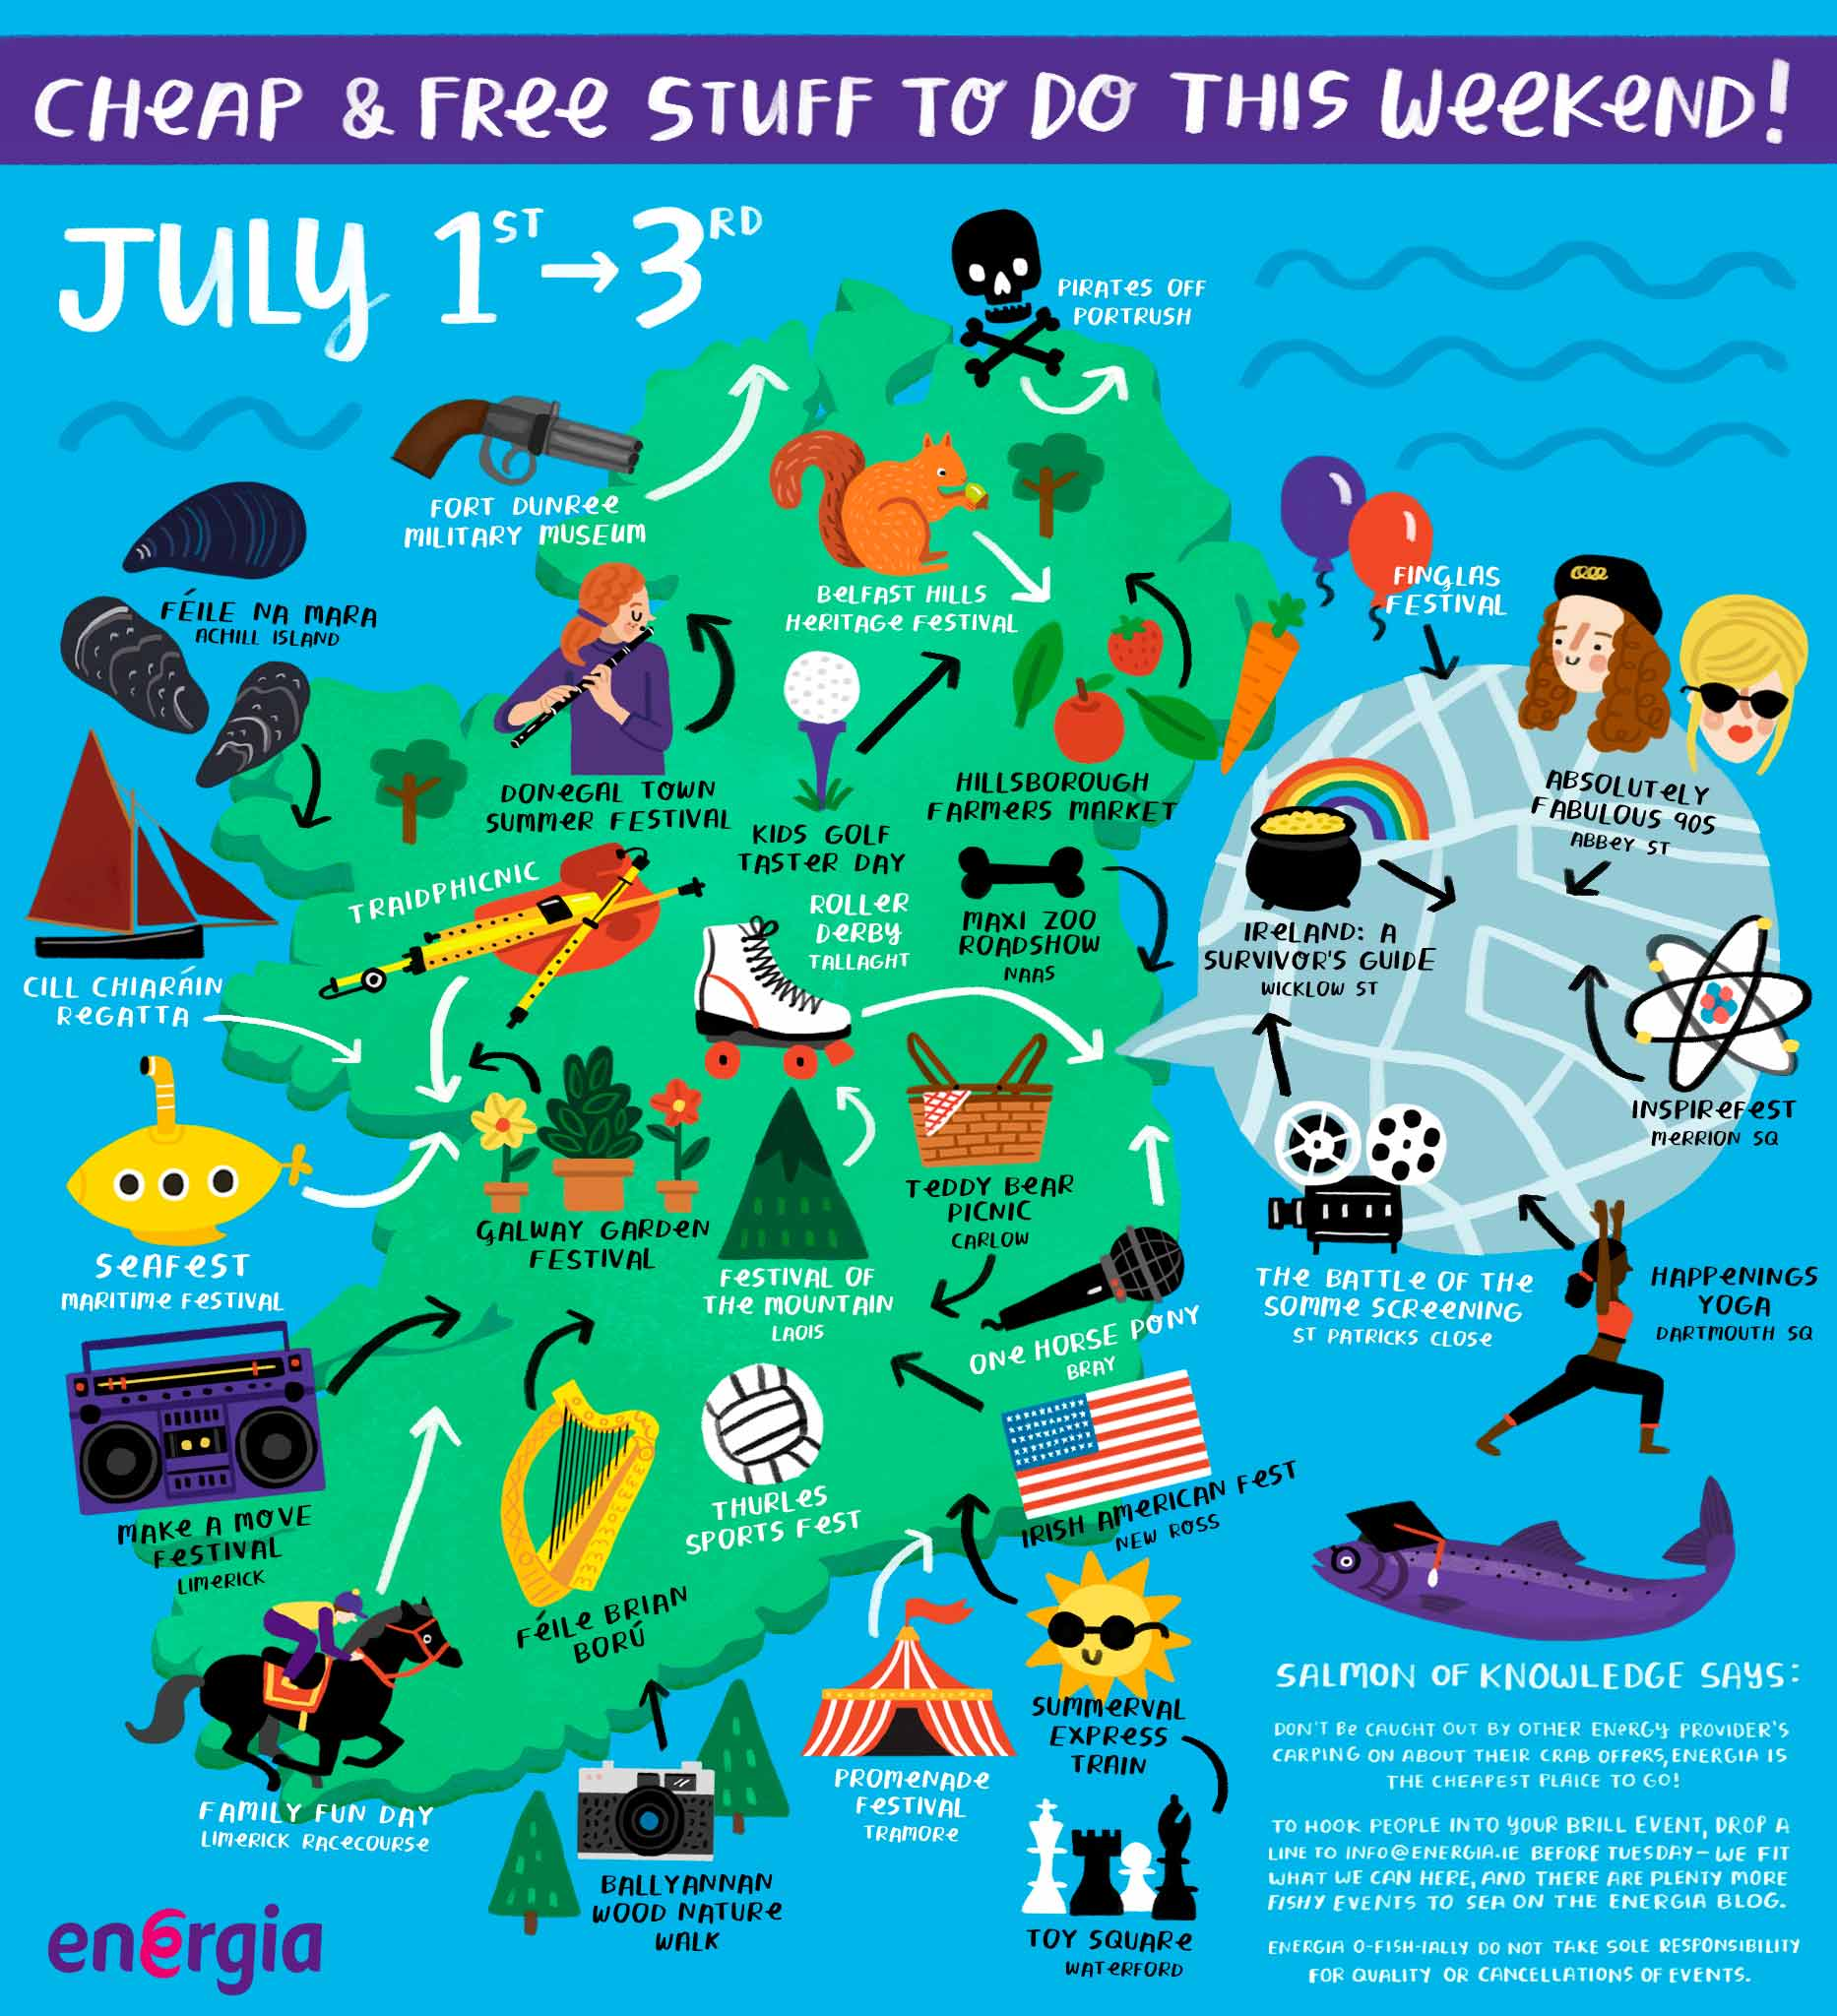 Cheap & Free stuff to do this weekend 1st to 3rd July